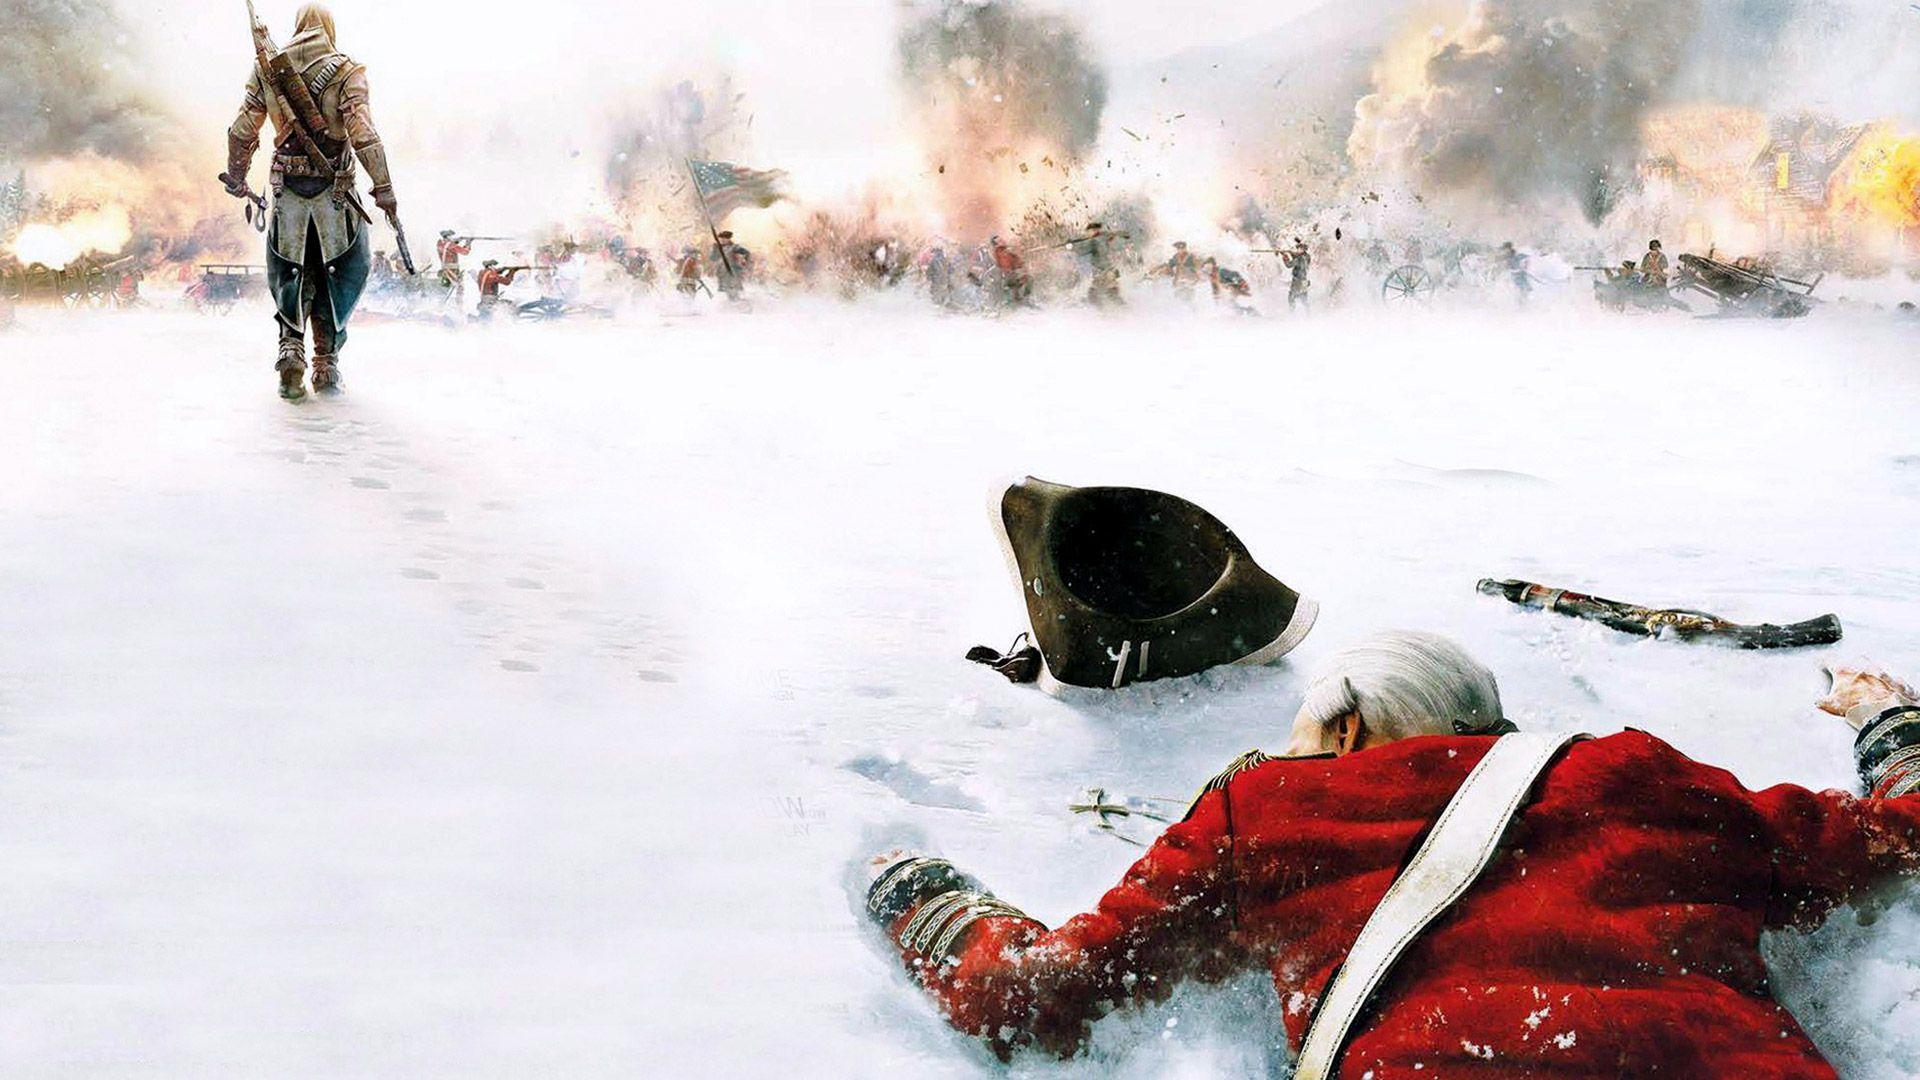 creed iii wallpaper - photo #35